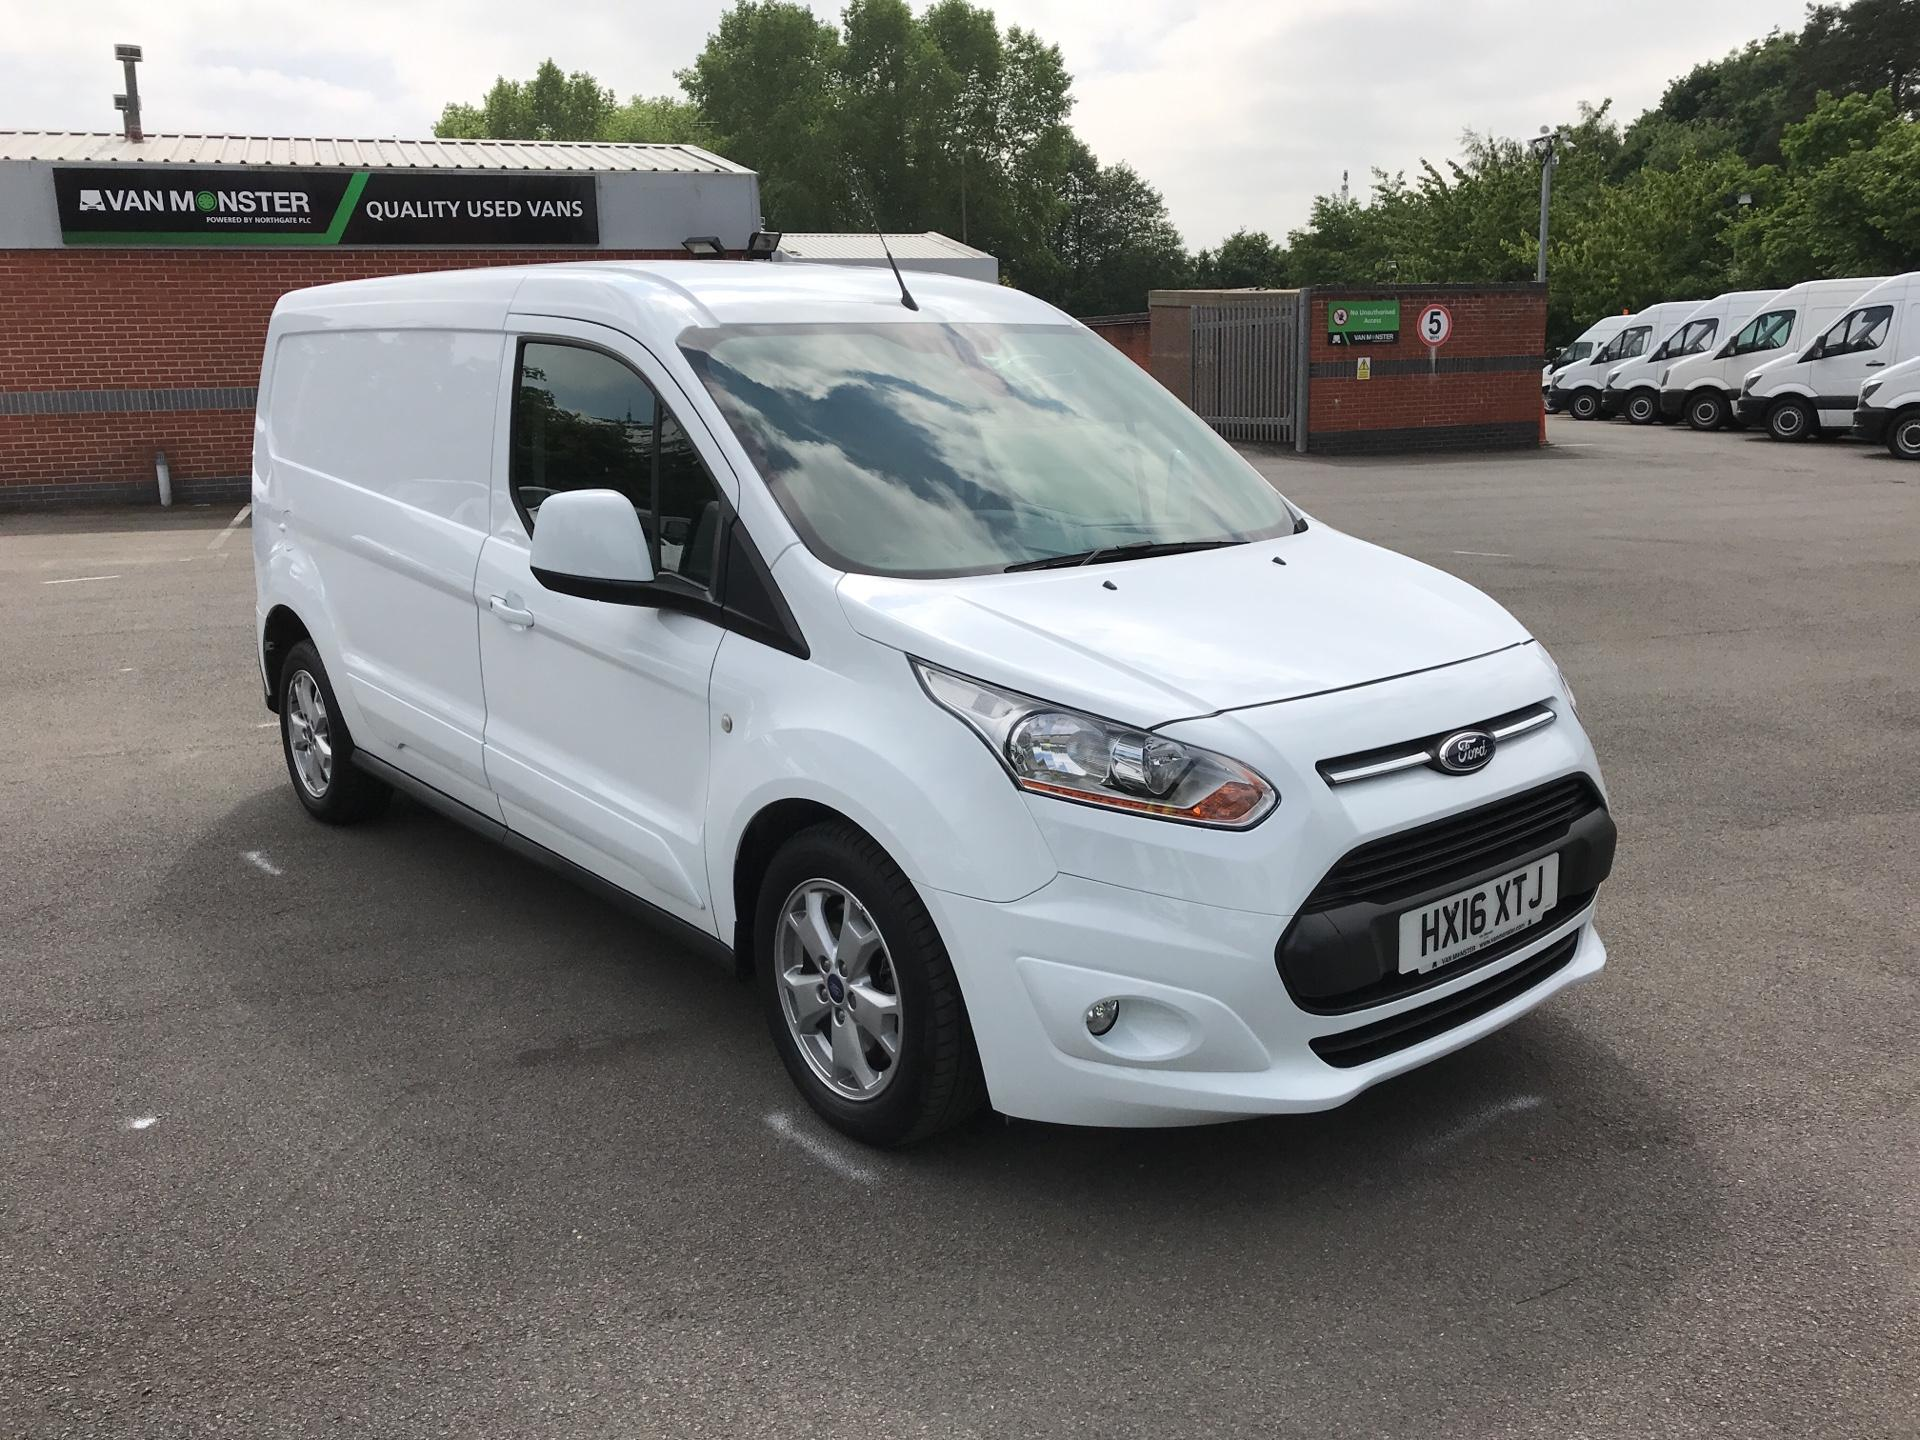 2016 Ford Transit Connect 1.6 Tdci 115Ps Limited Van Euro 5 (HX16XTJ)